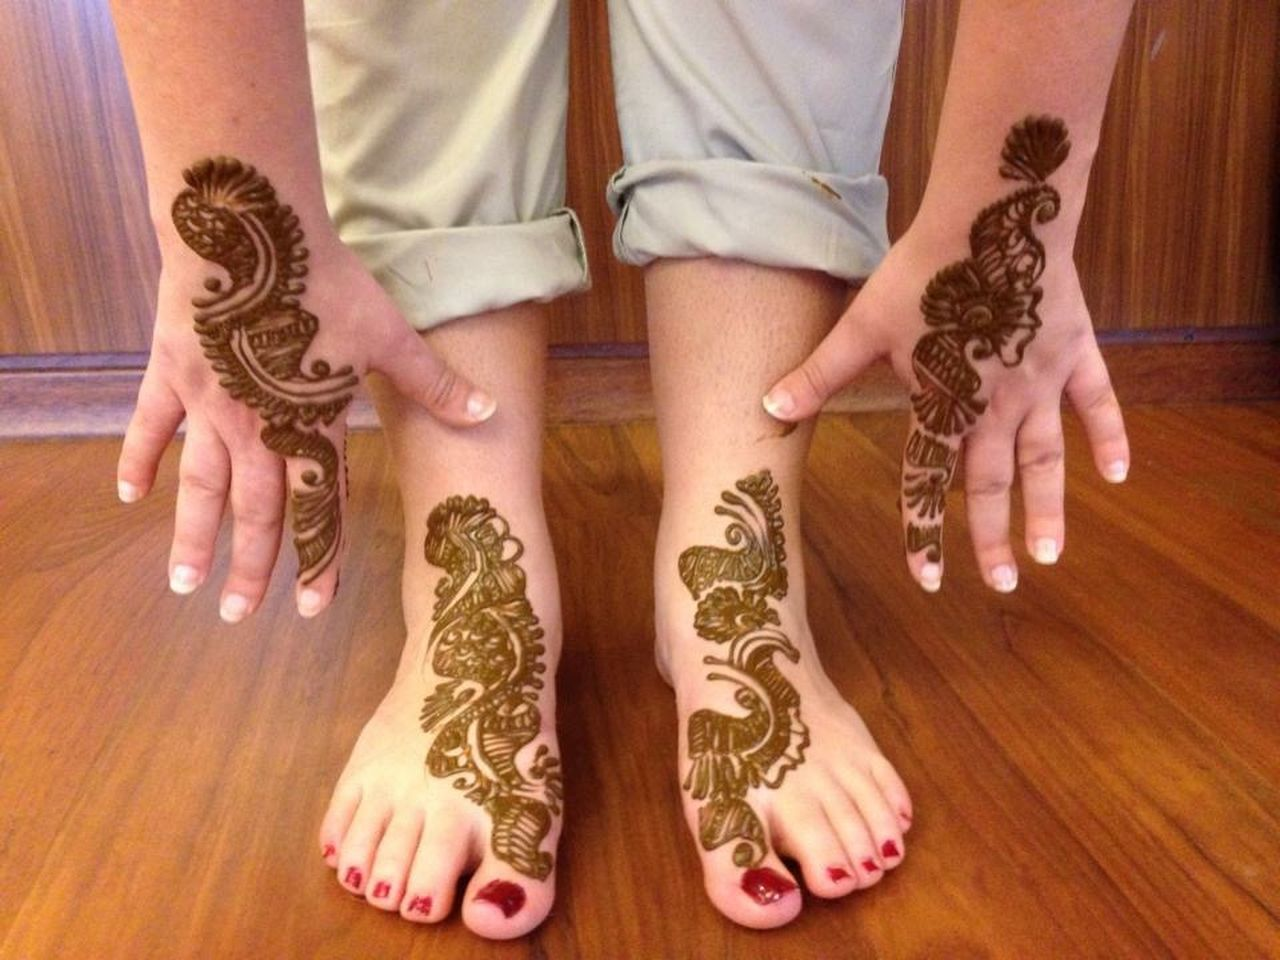 India Tatuaggio Henne Matrimonio Decorazione Invitati Matrimonioindiano